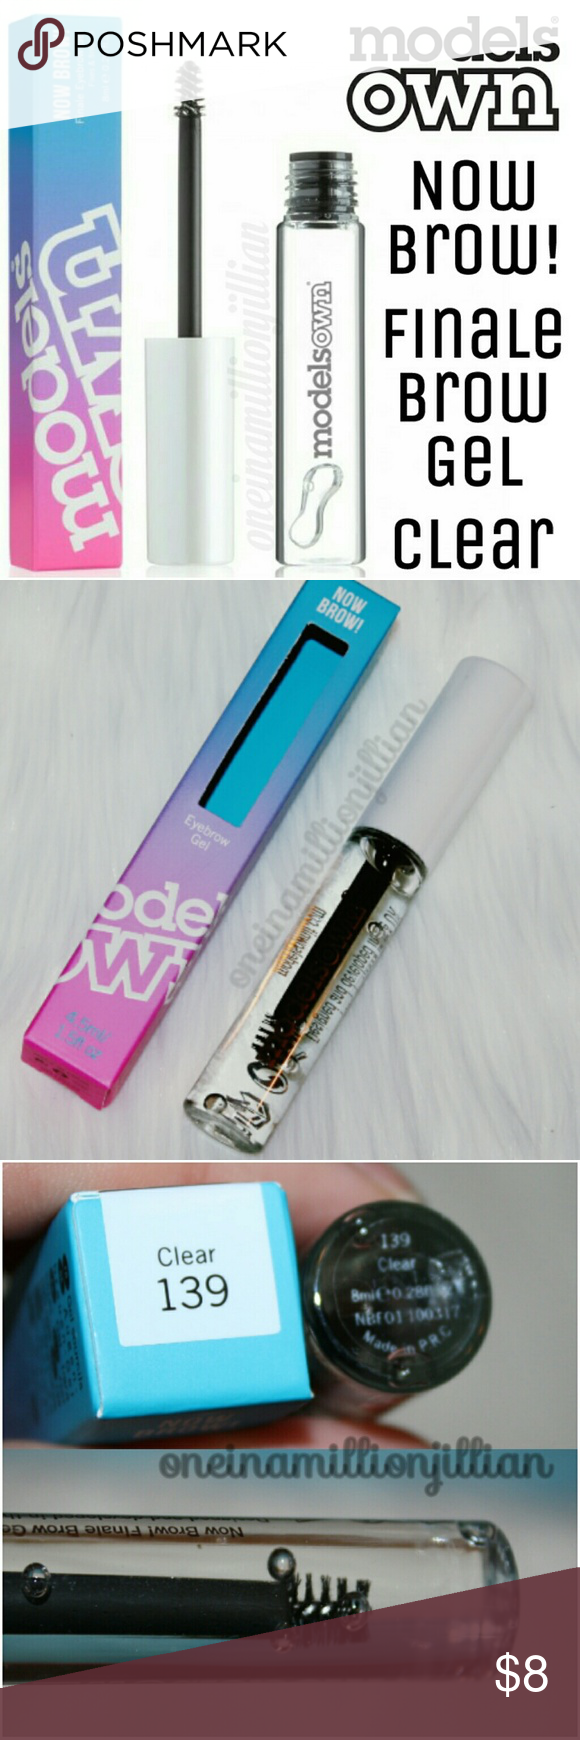 Models Own Now Brow! Finale Brow Gel Clear New in Box